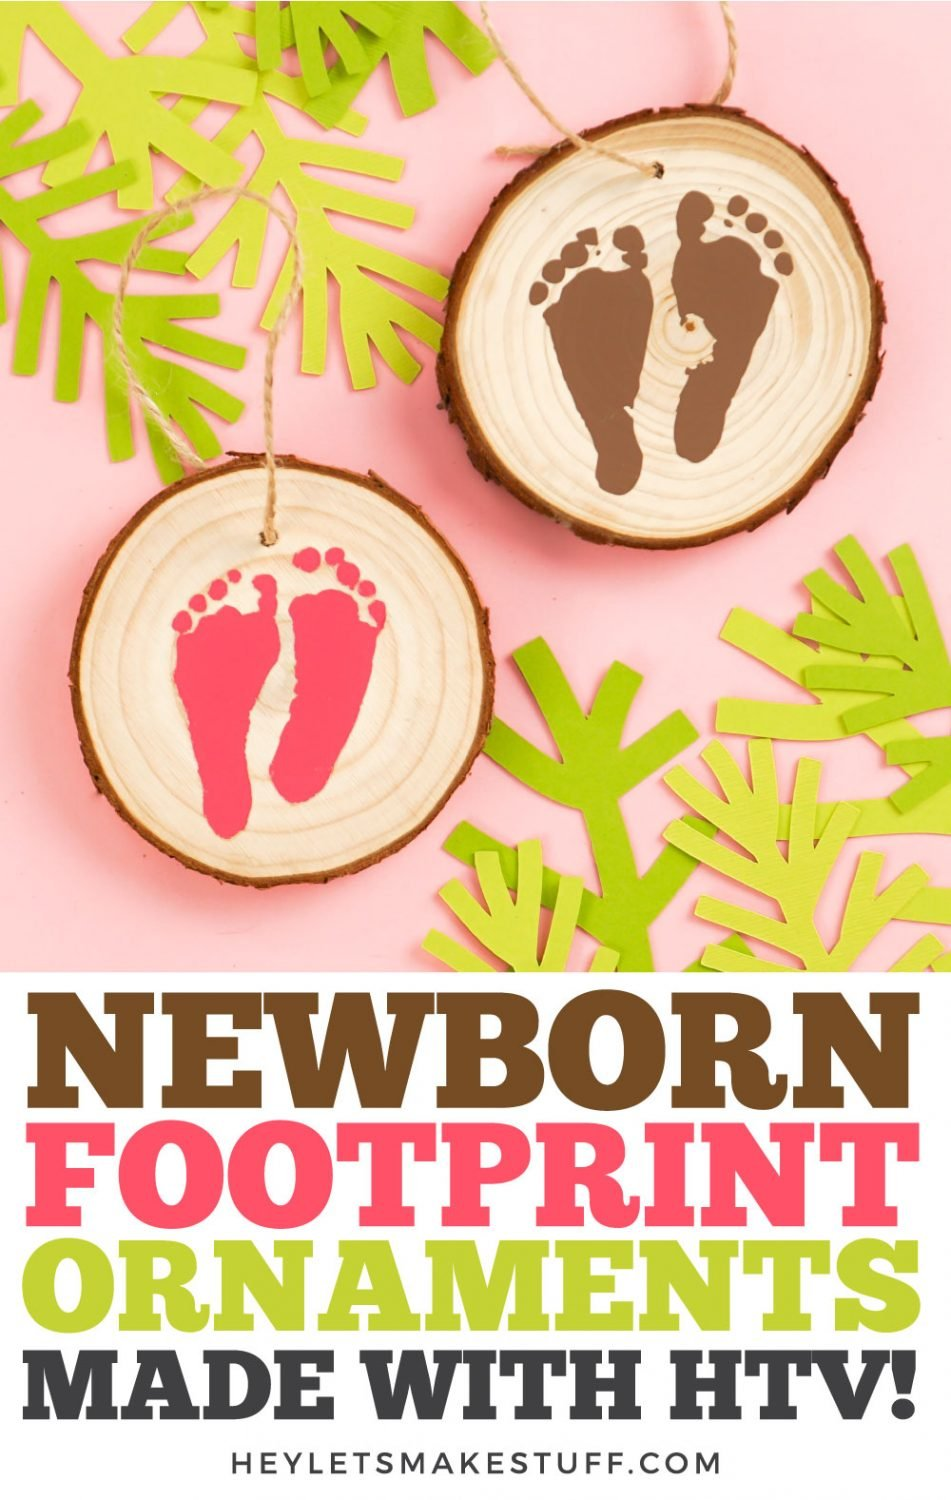 Newborn Footprint Ornaments pin image